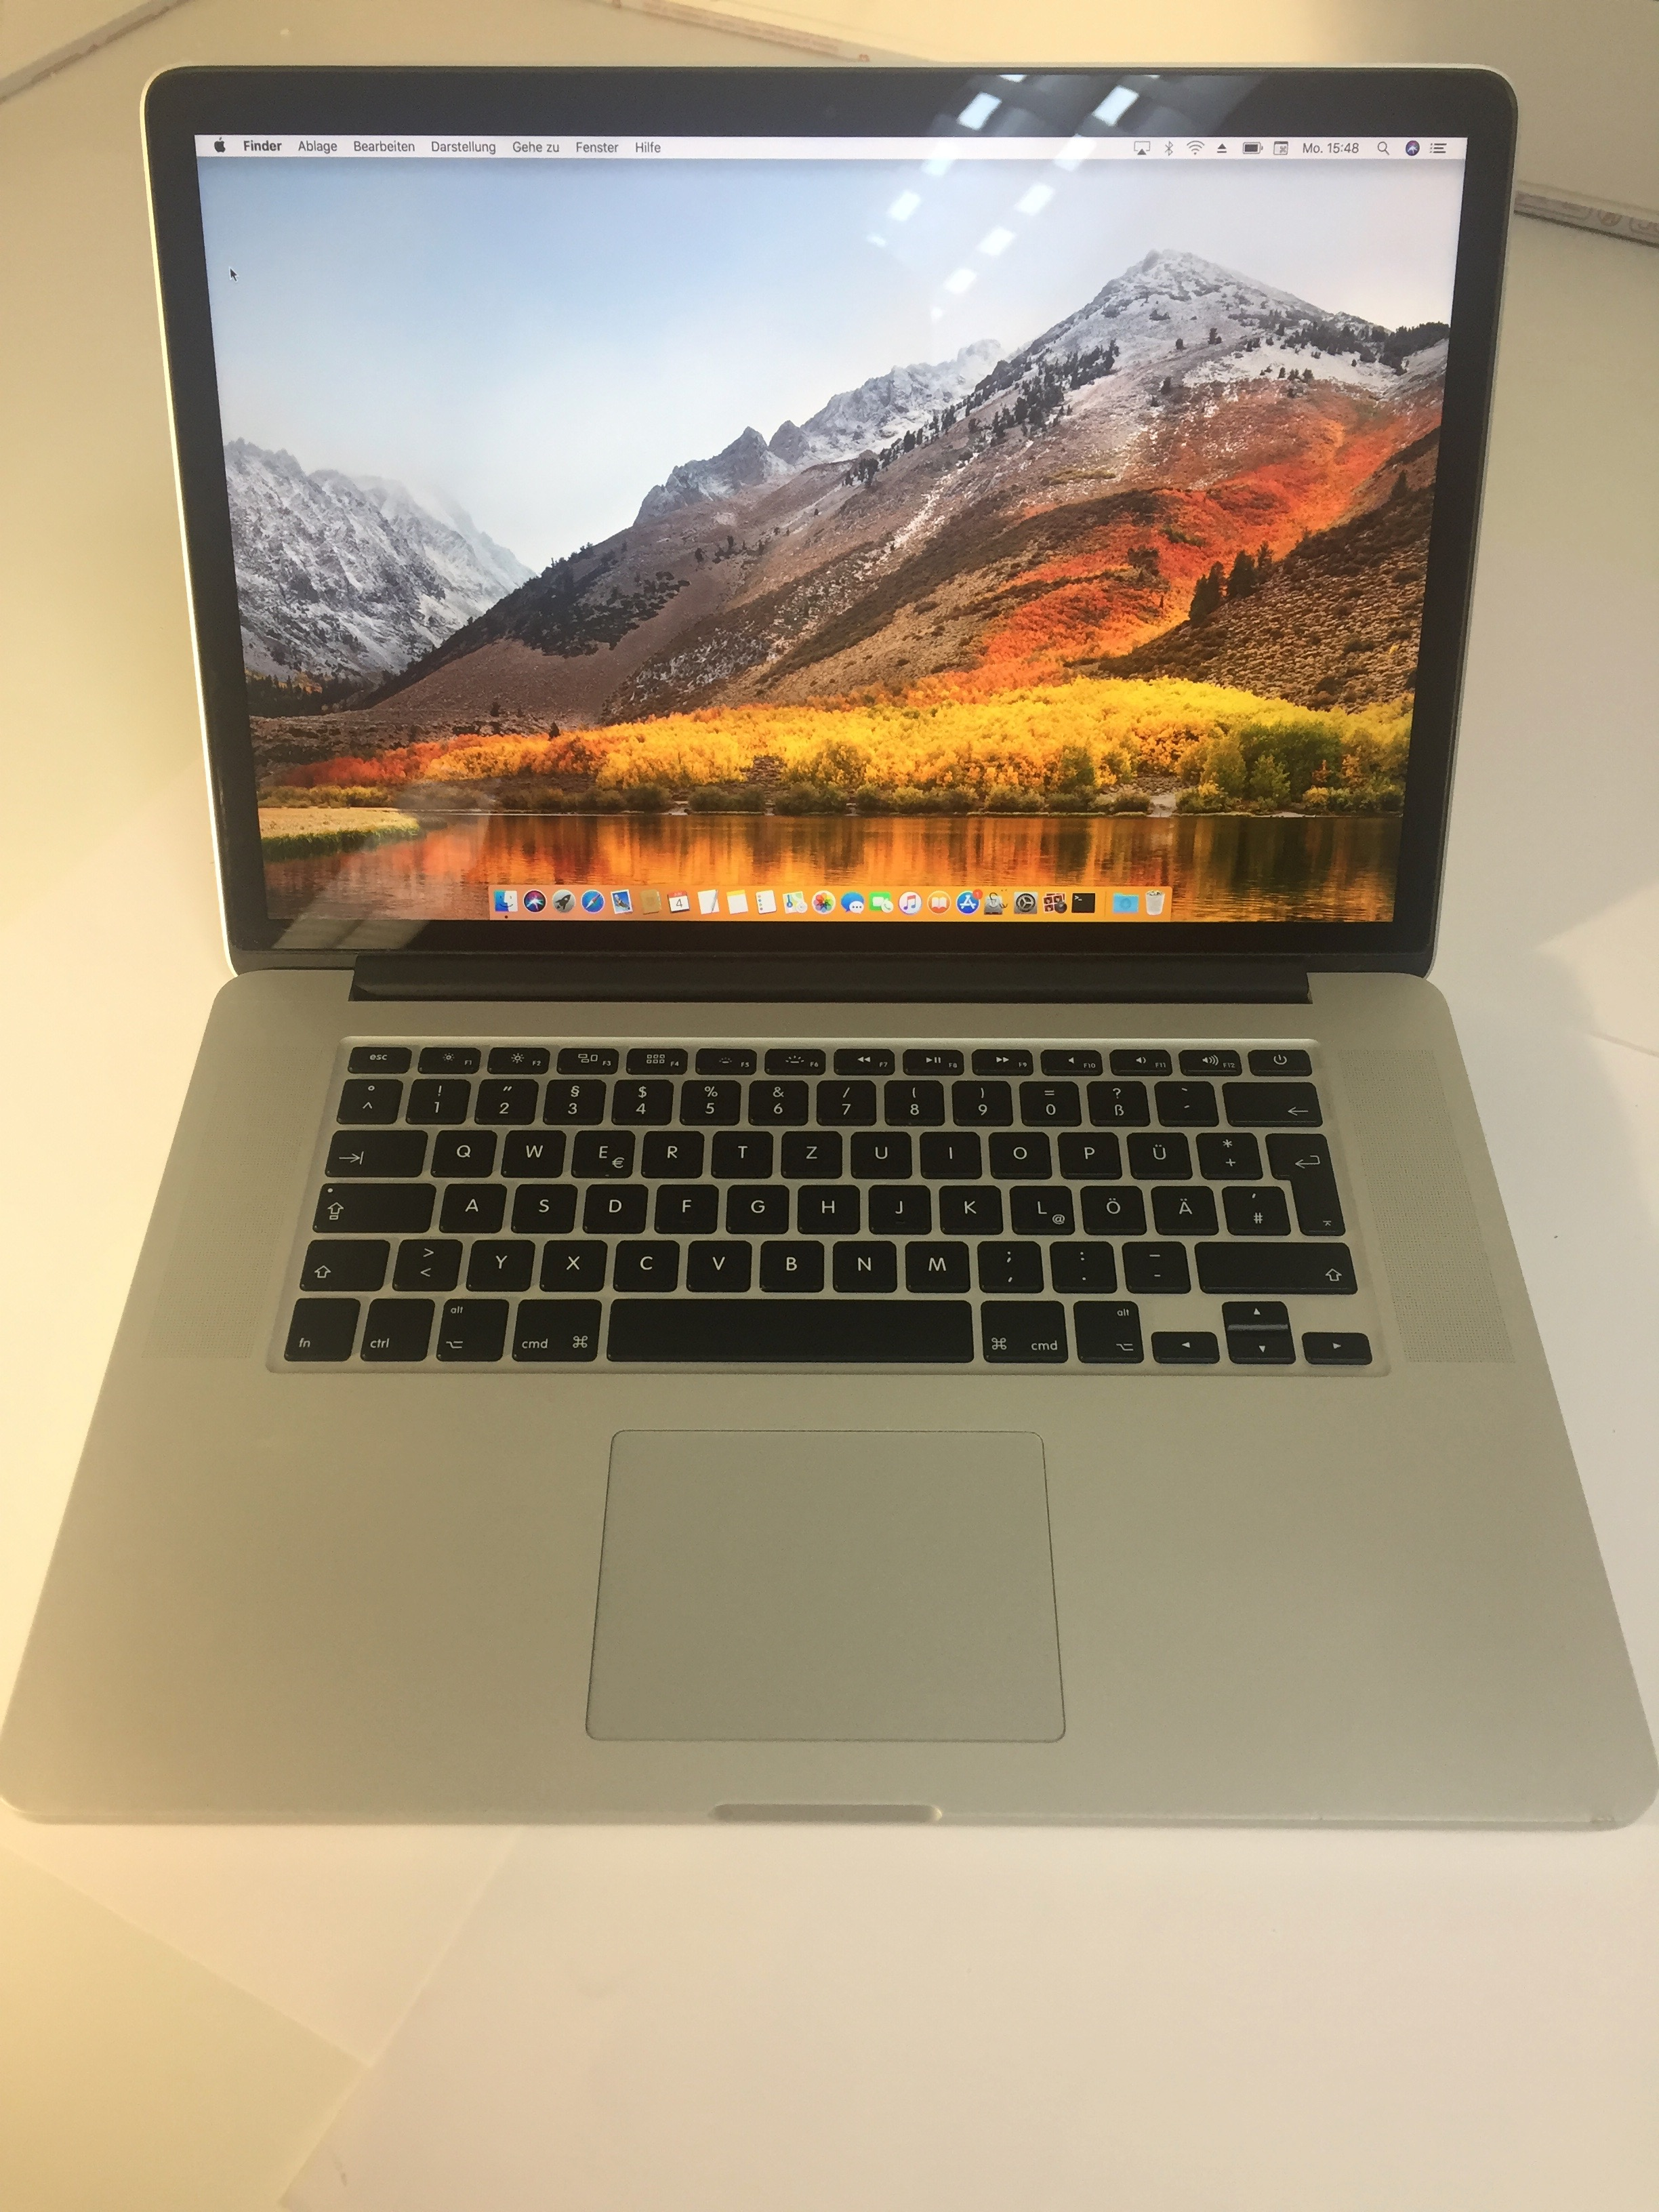 MacBook Pro 15-inch Retina, 2.0 GHz Intel Core i7, 16 GB , 256 GB Flash, Bild 1